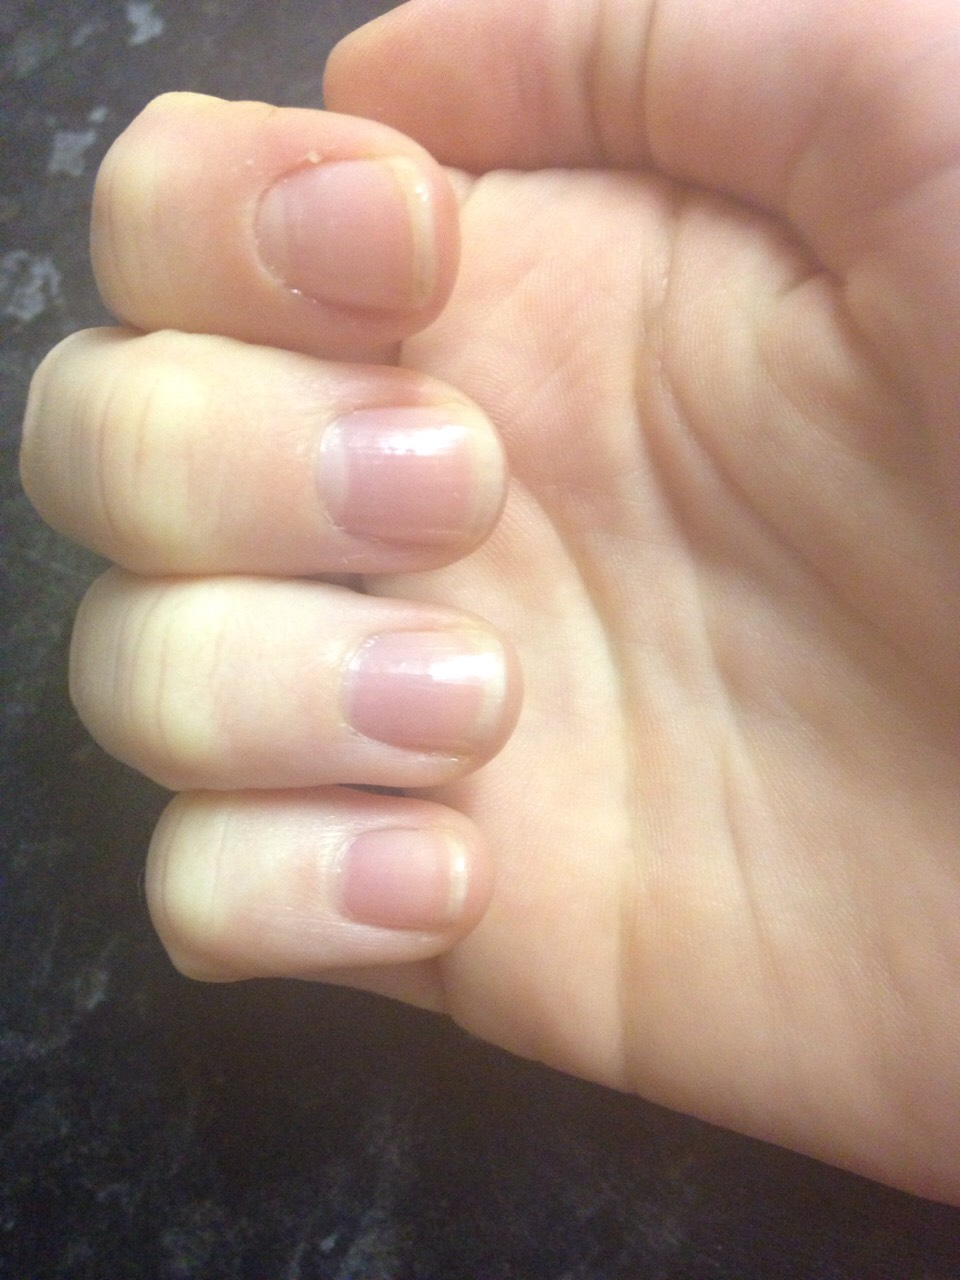 Step 3 : put a generous layer on each nail and repeat this everyday (don't forget to remove the previous later before applying fresh) you should see results in a week or two 🤗